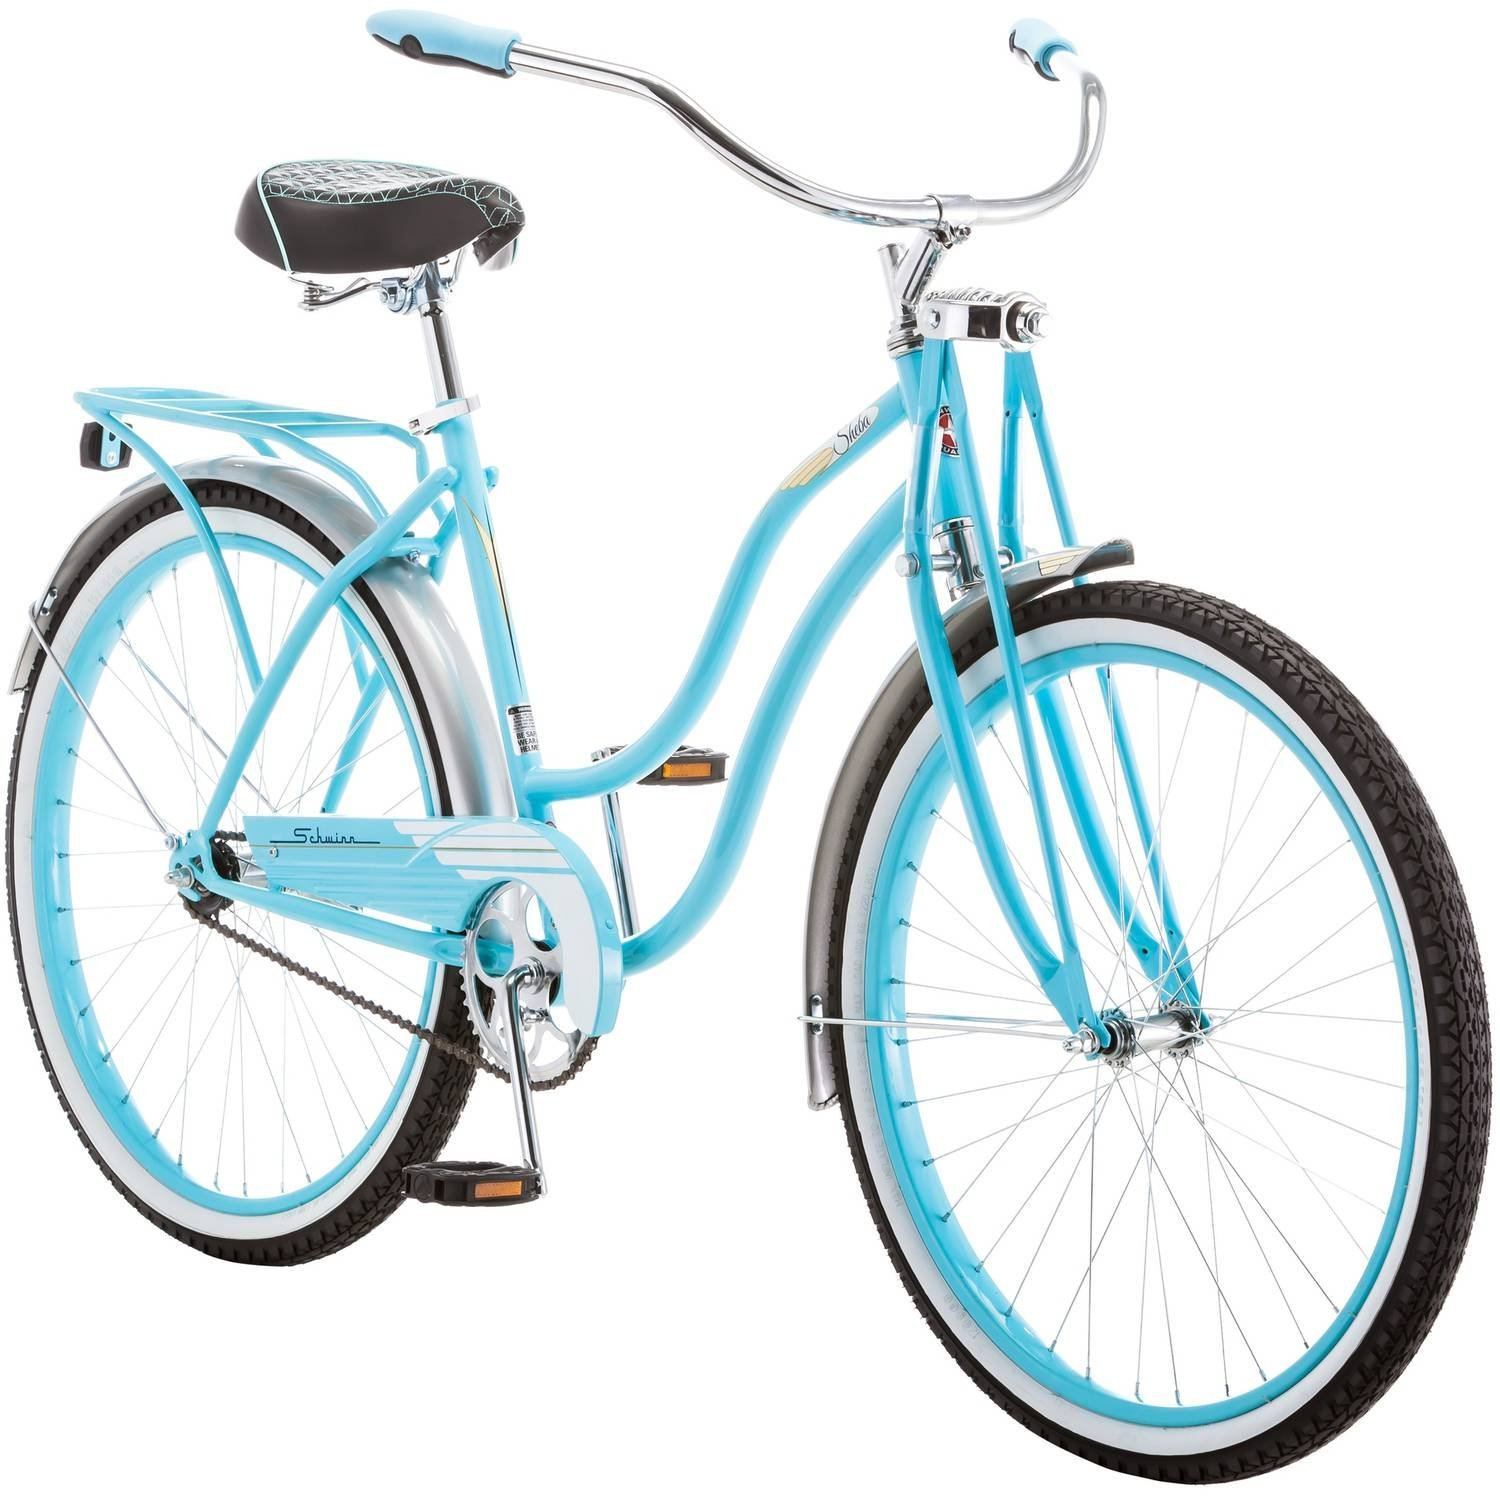 121098eda48 Get Quotations · Schwinn Women's Sheba Cruiser Bike, Light Blue, 16